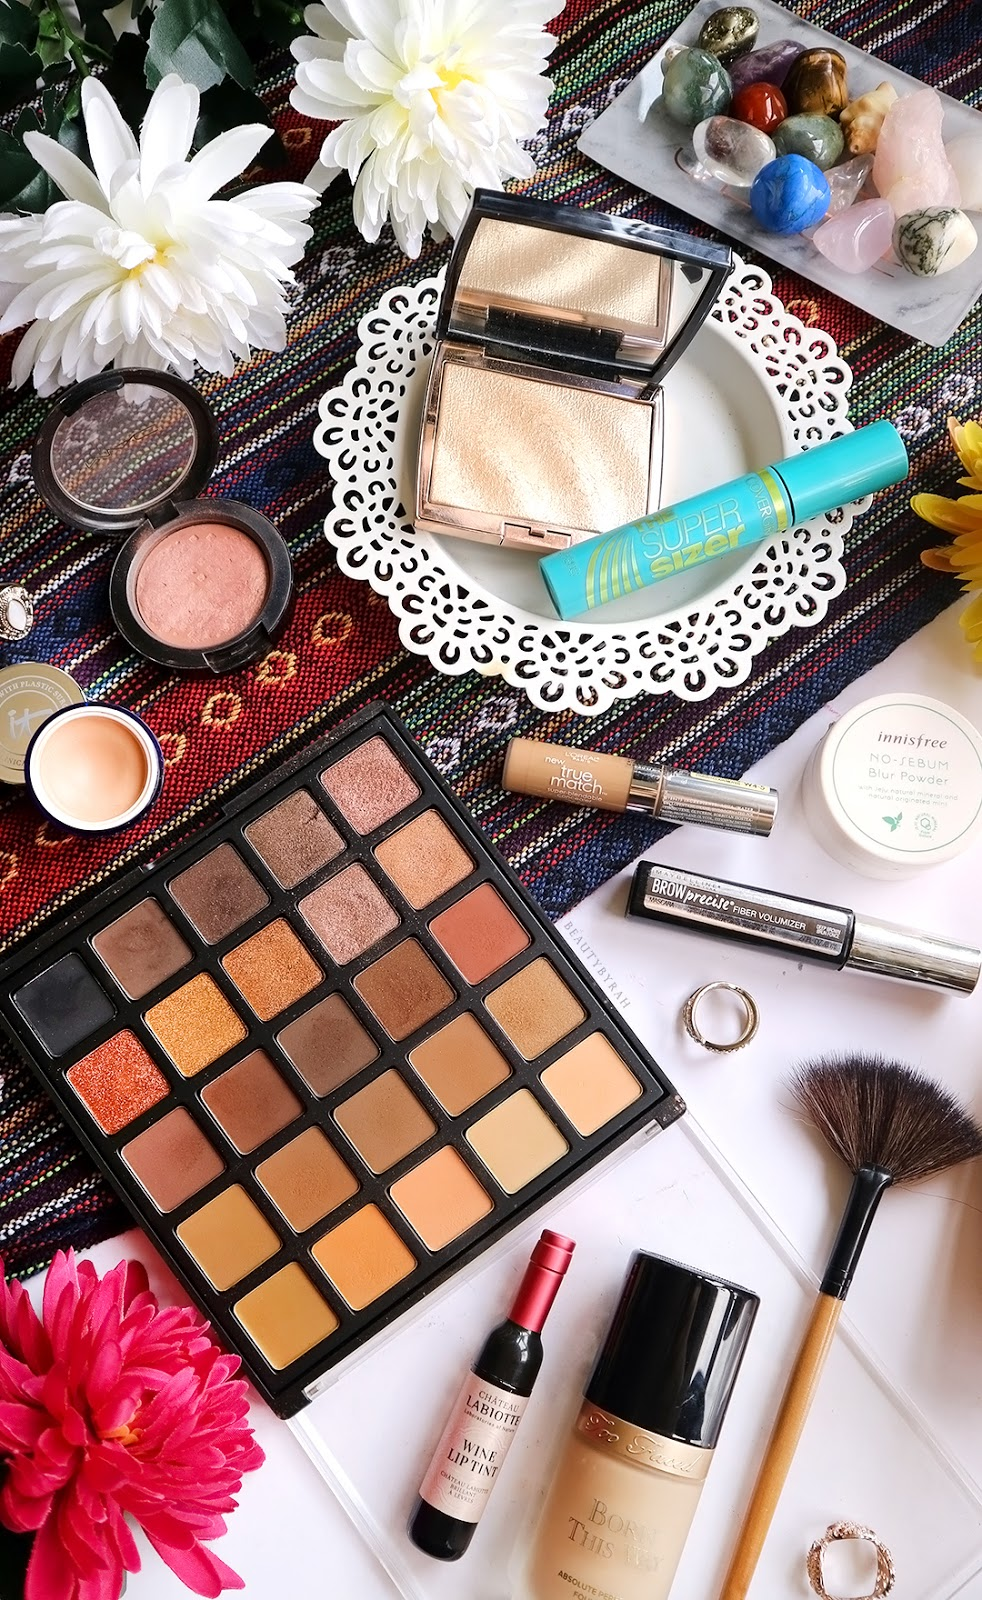 My Makeup must haves and recommendations